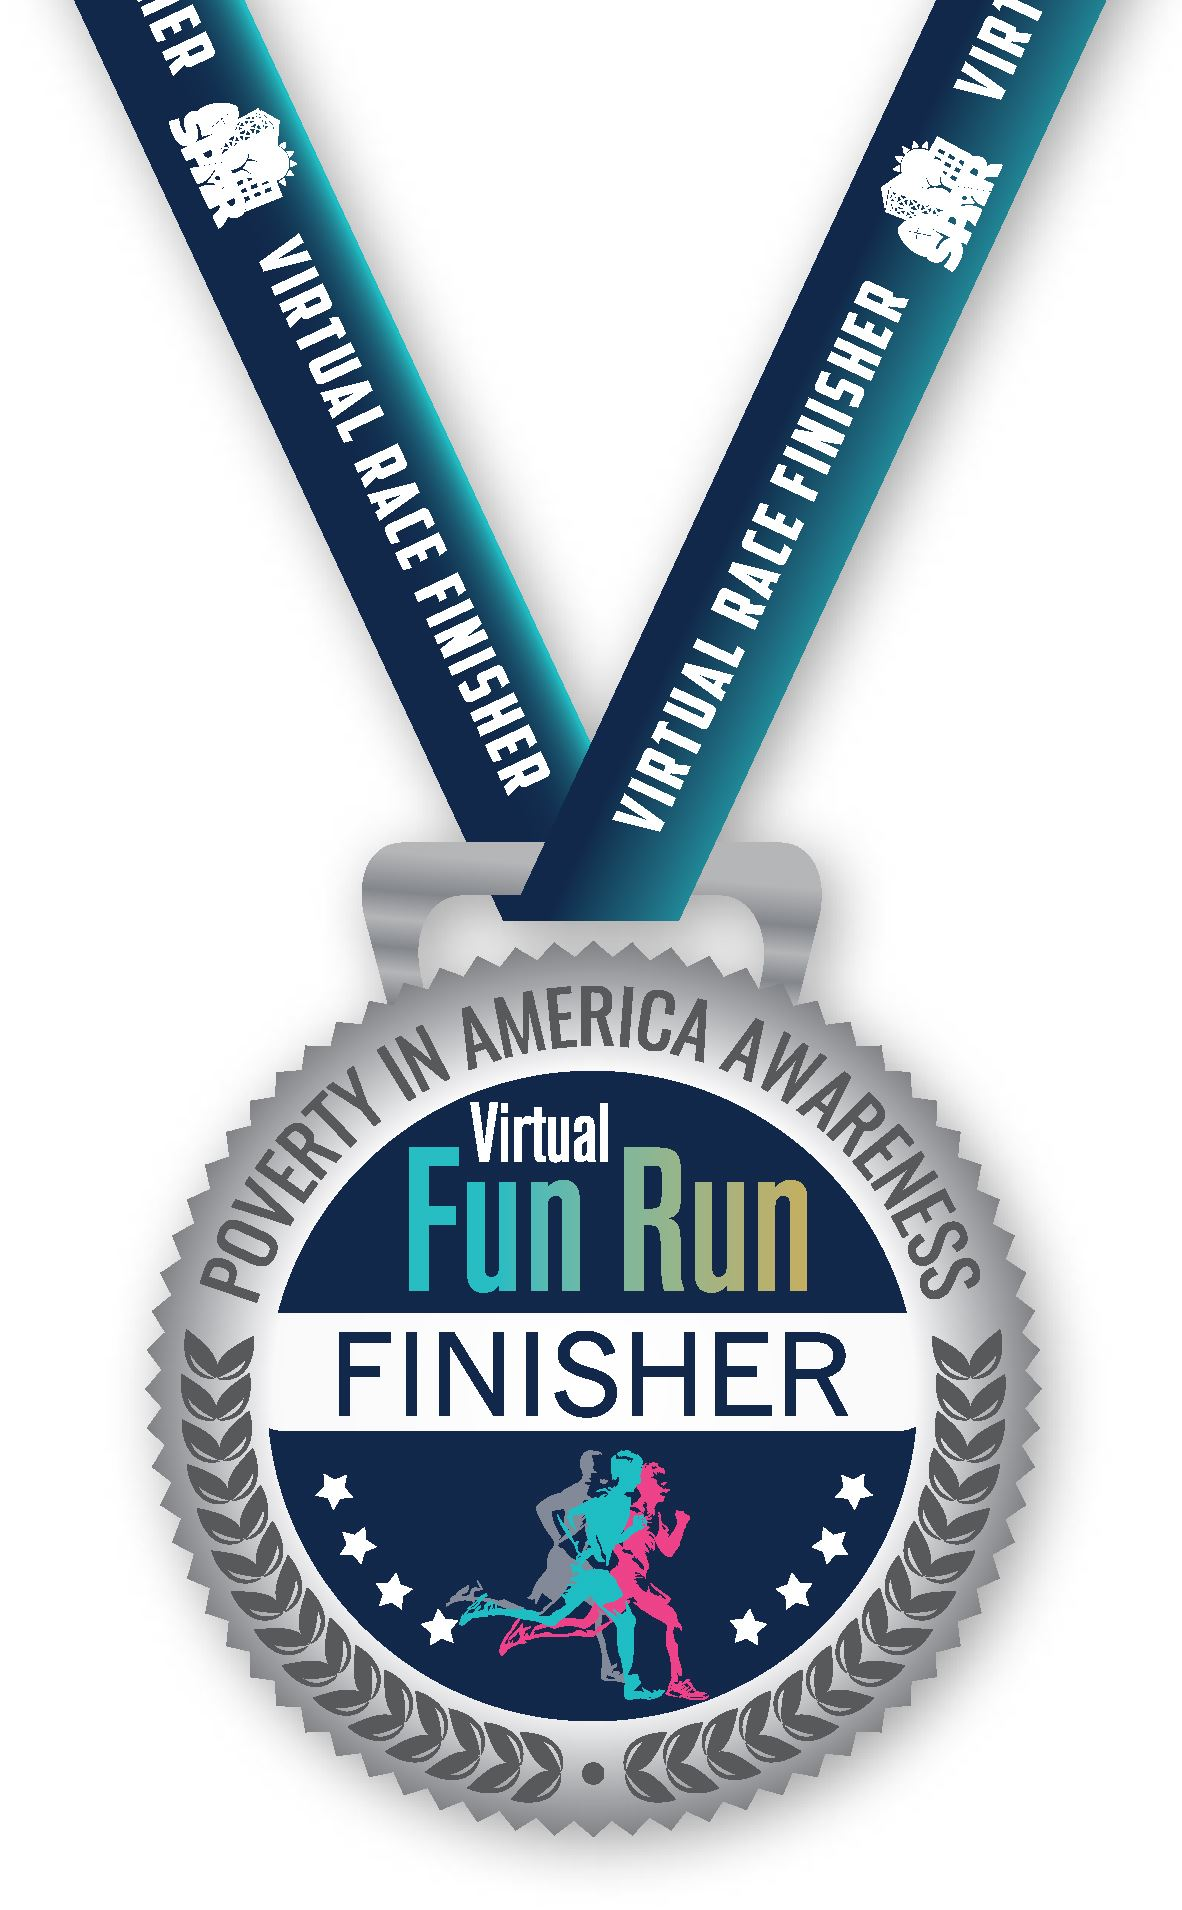 2021 01 Poverty virtual fun run MEDAL crop